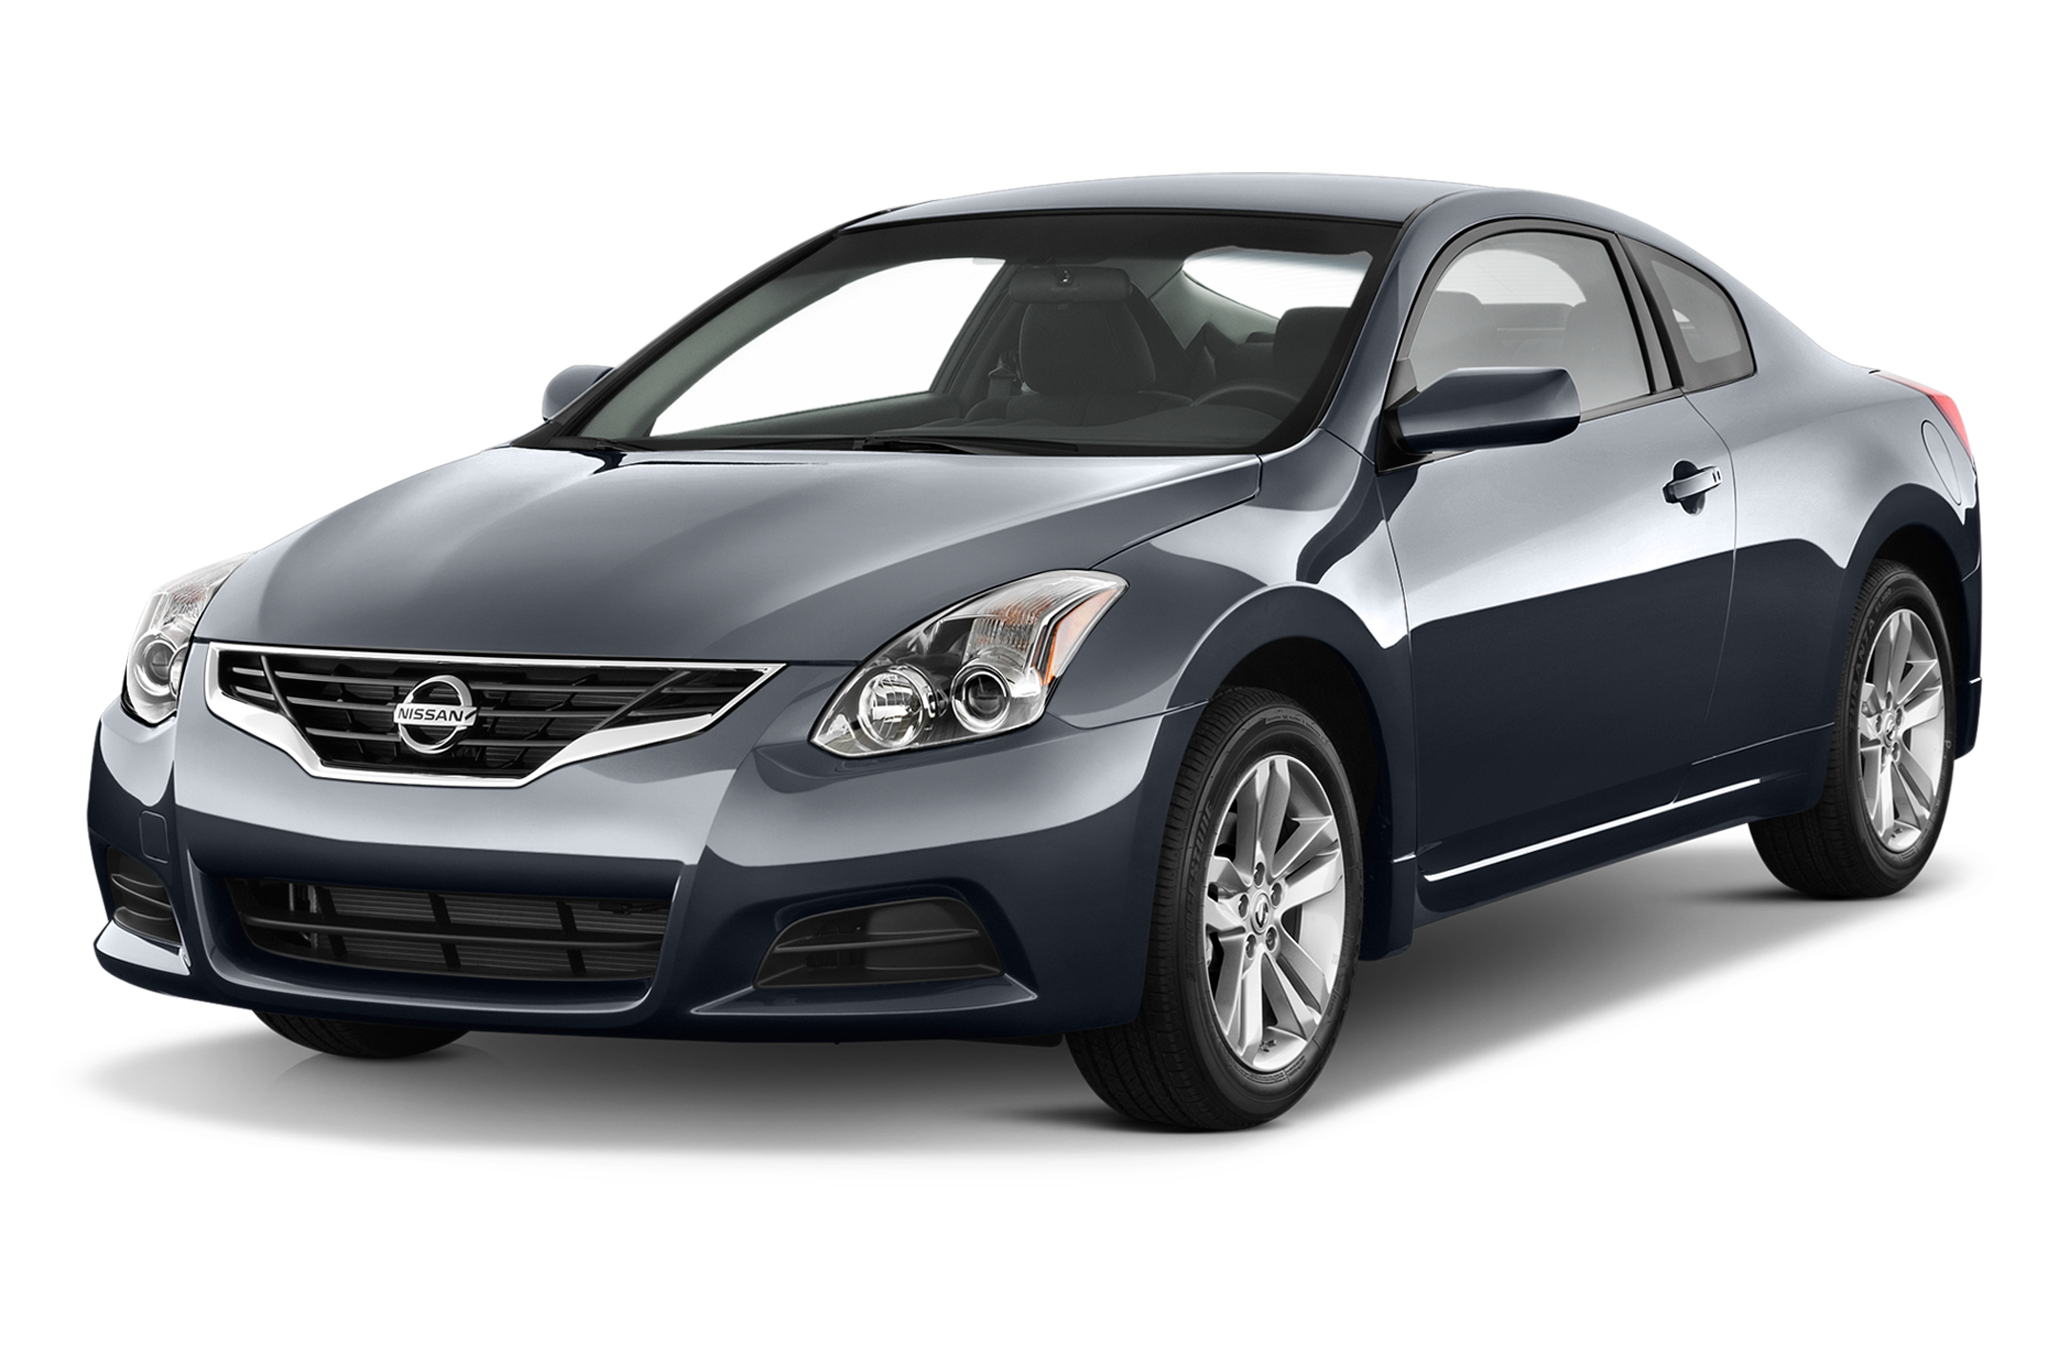 Lovely 2011 Nissan Altima